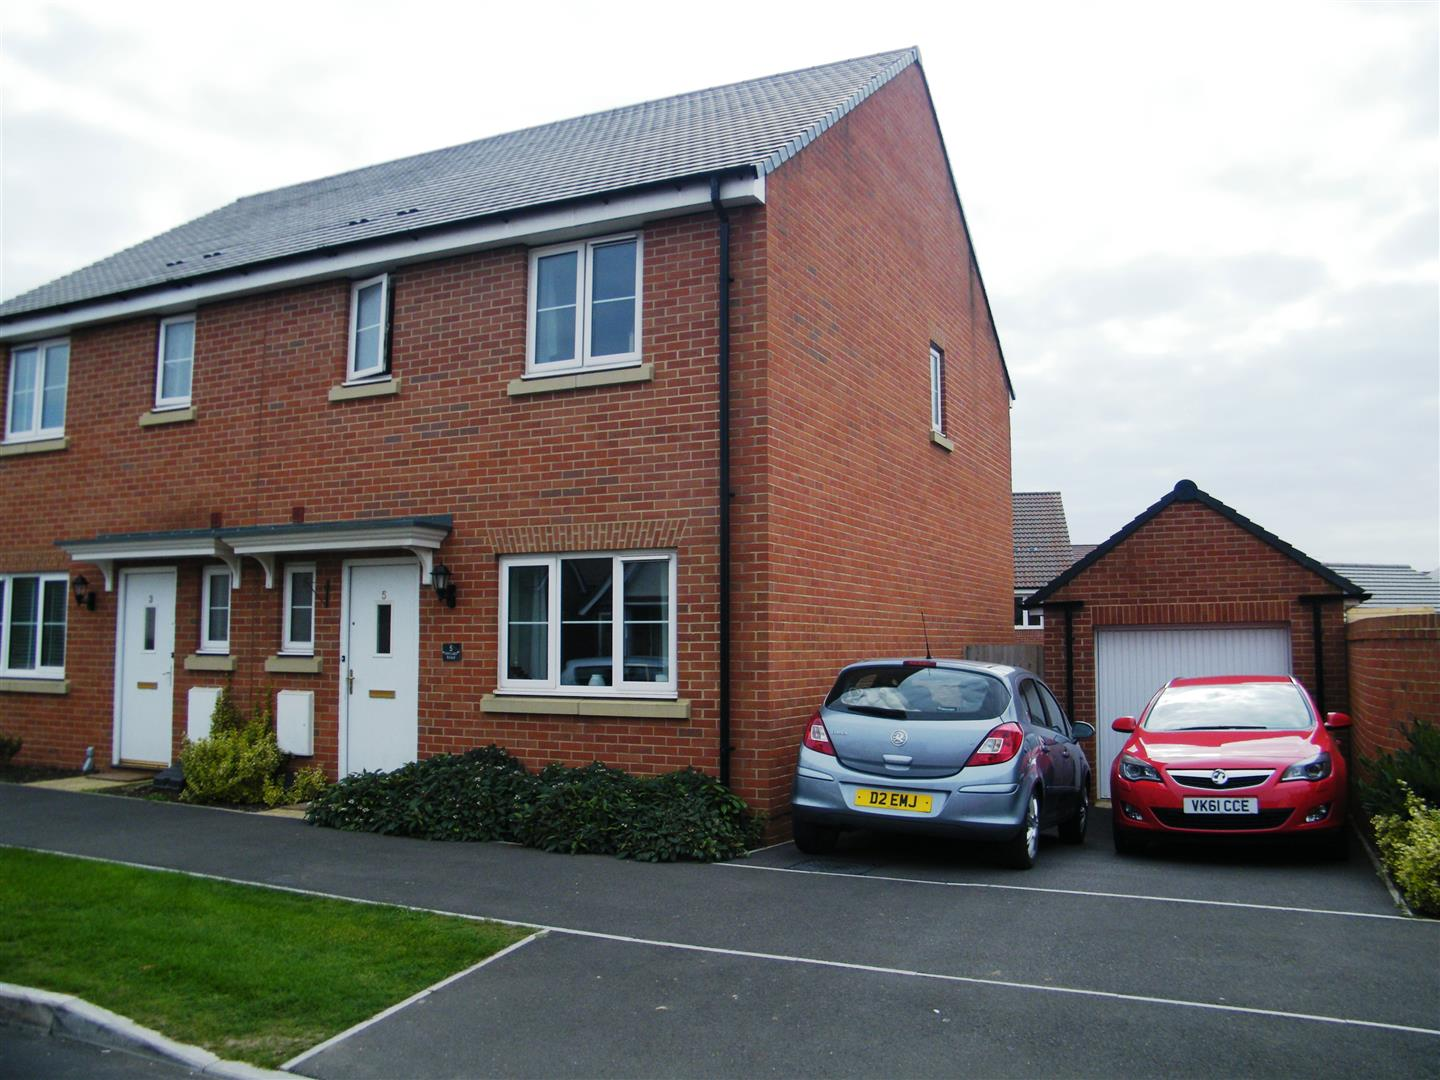 3 Bedrooms Semi Detached House for sale in Hercules Road, Calne